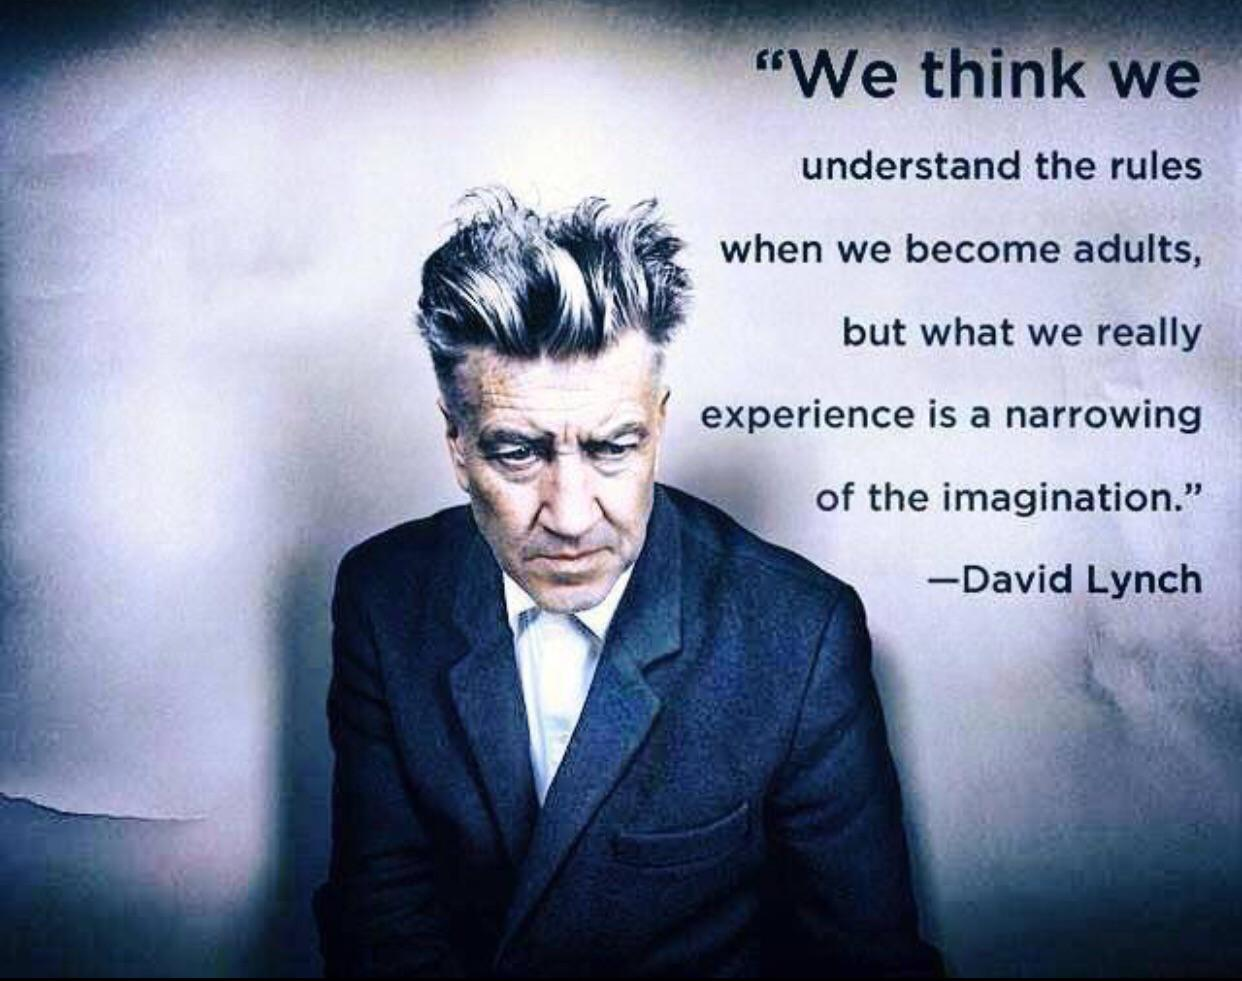 """We think we understand the rules when we become adults, but what we really experience is a narrowing of the imagination."" -David Lynch 466×704"